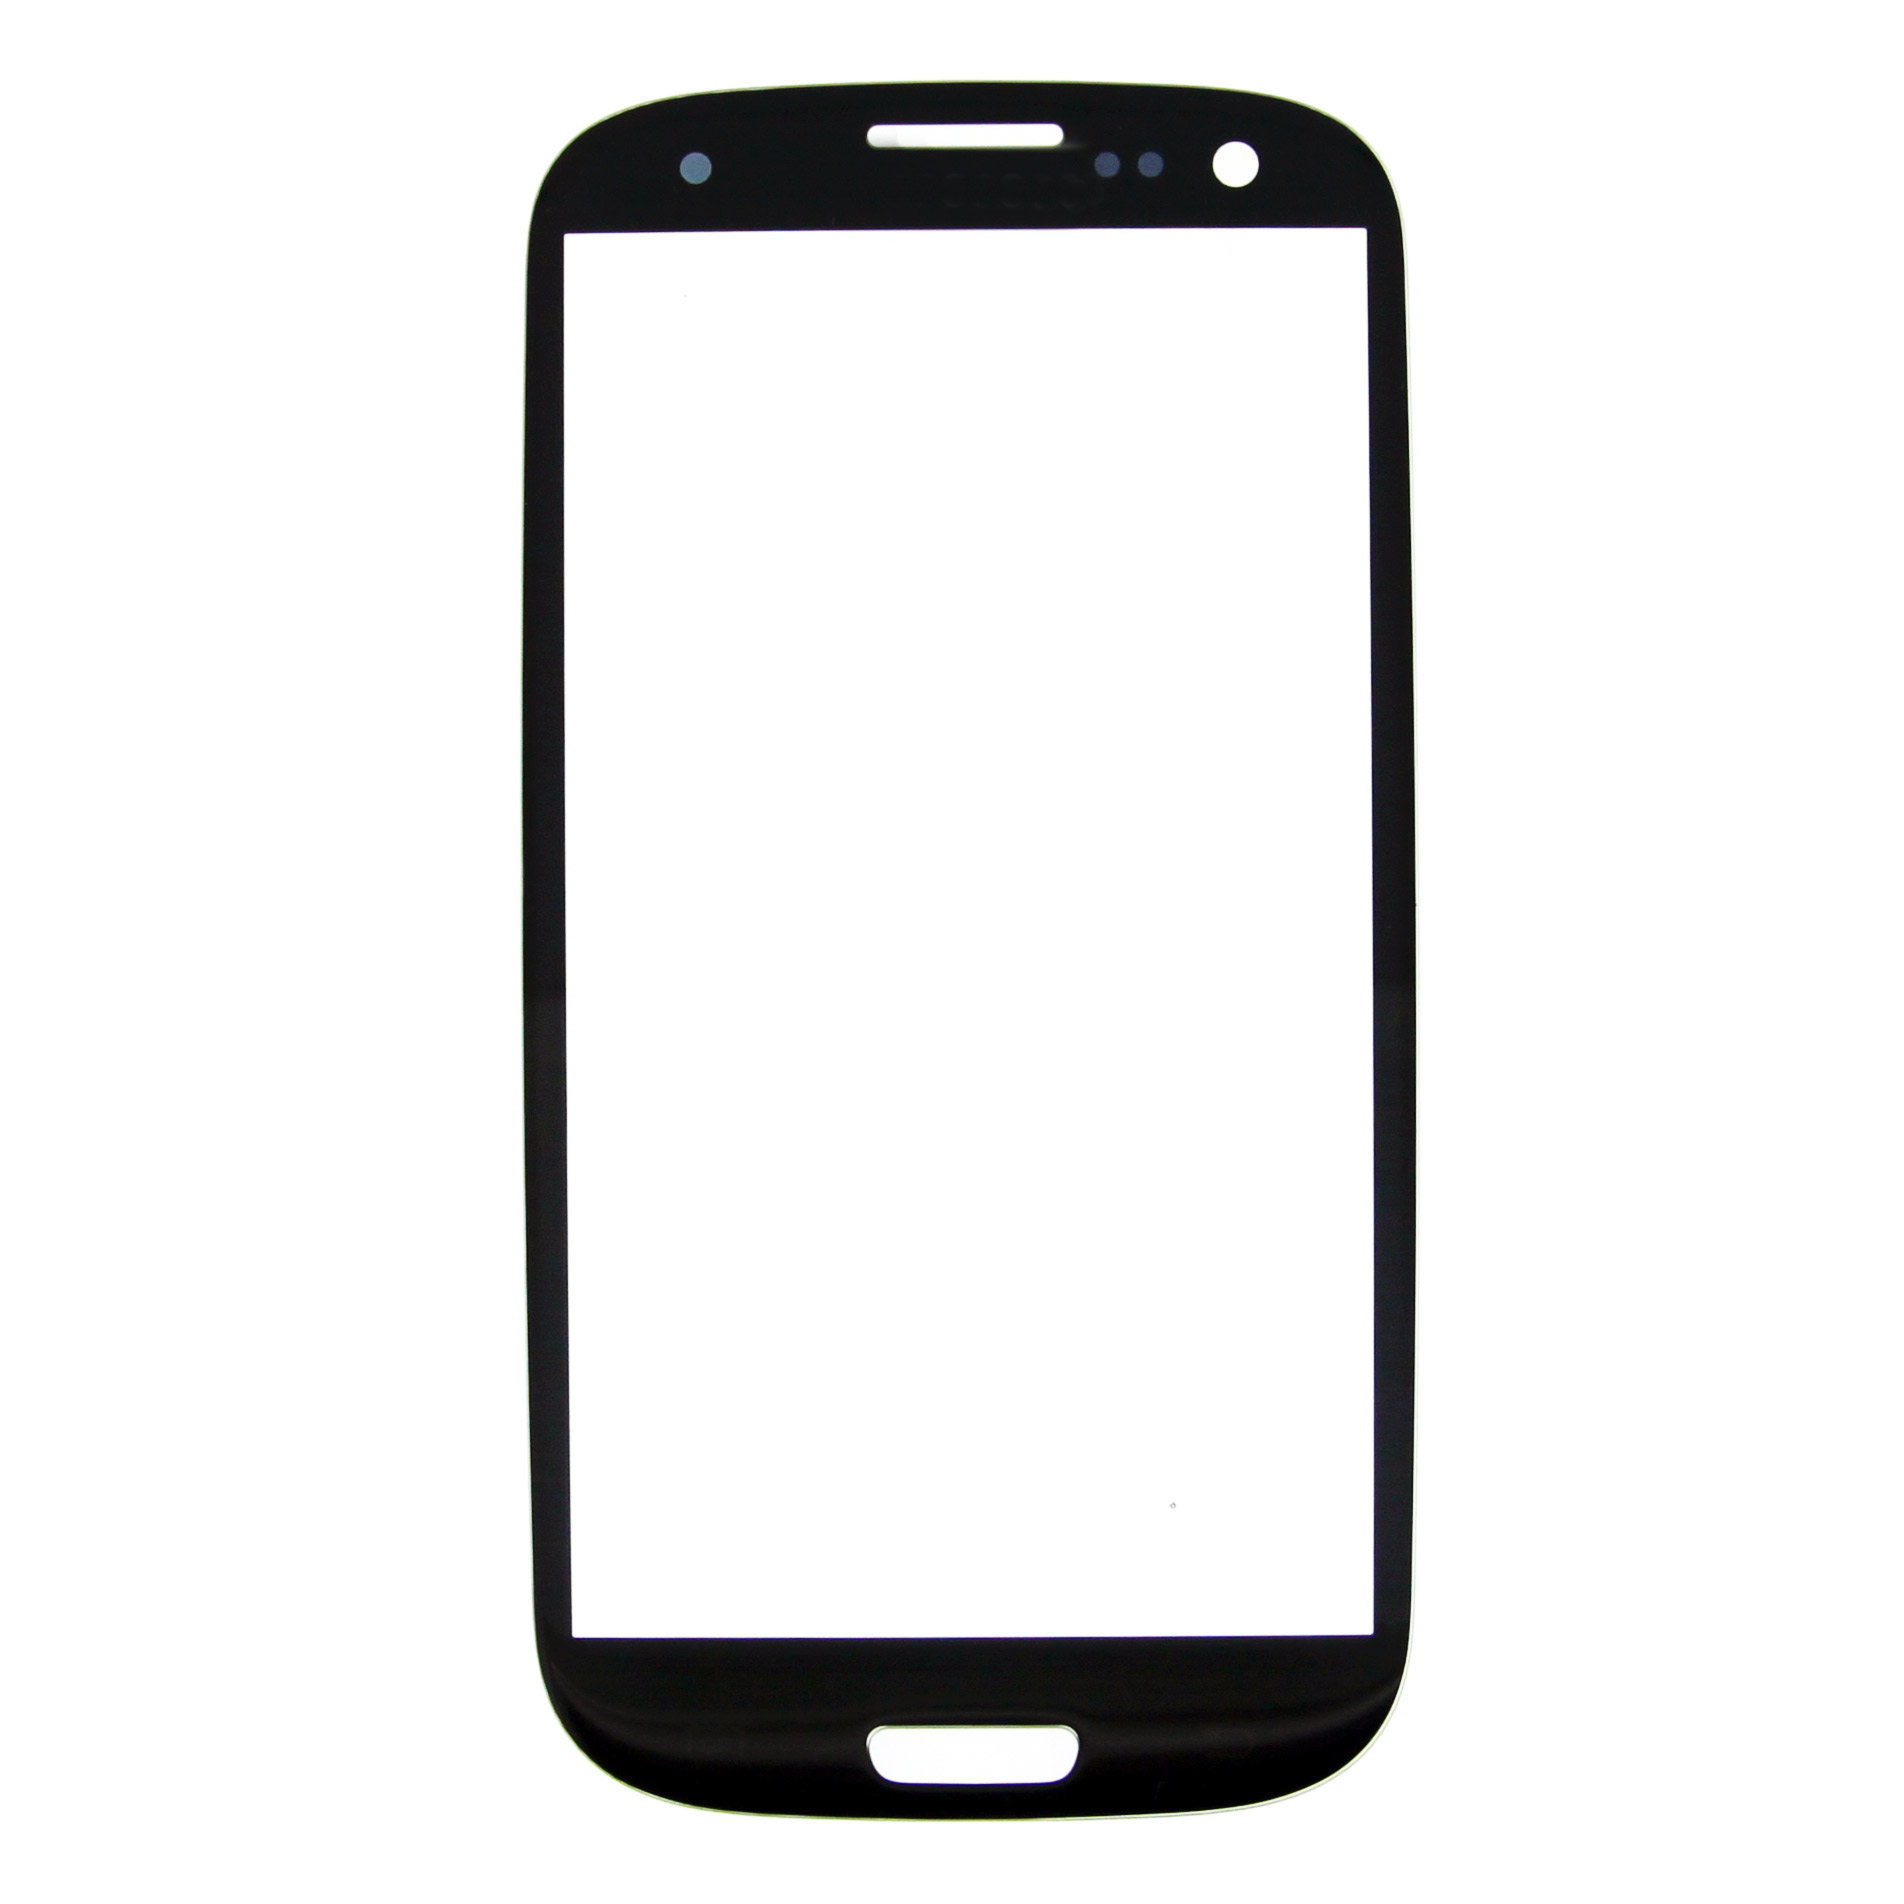 Archie Betty Veronica Jughead And Cheryl Riverdale Phone Case moreover 1241468664 besides Shine Bright Phone Case together with Snapchat Download For Samsung Galaxy S3 in addition Iphone 5s Diagram Interior. on review samsung galaxy s5